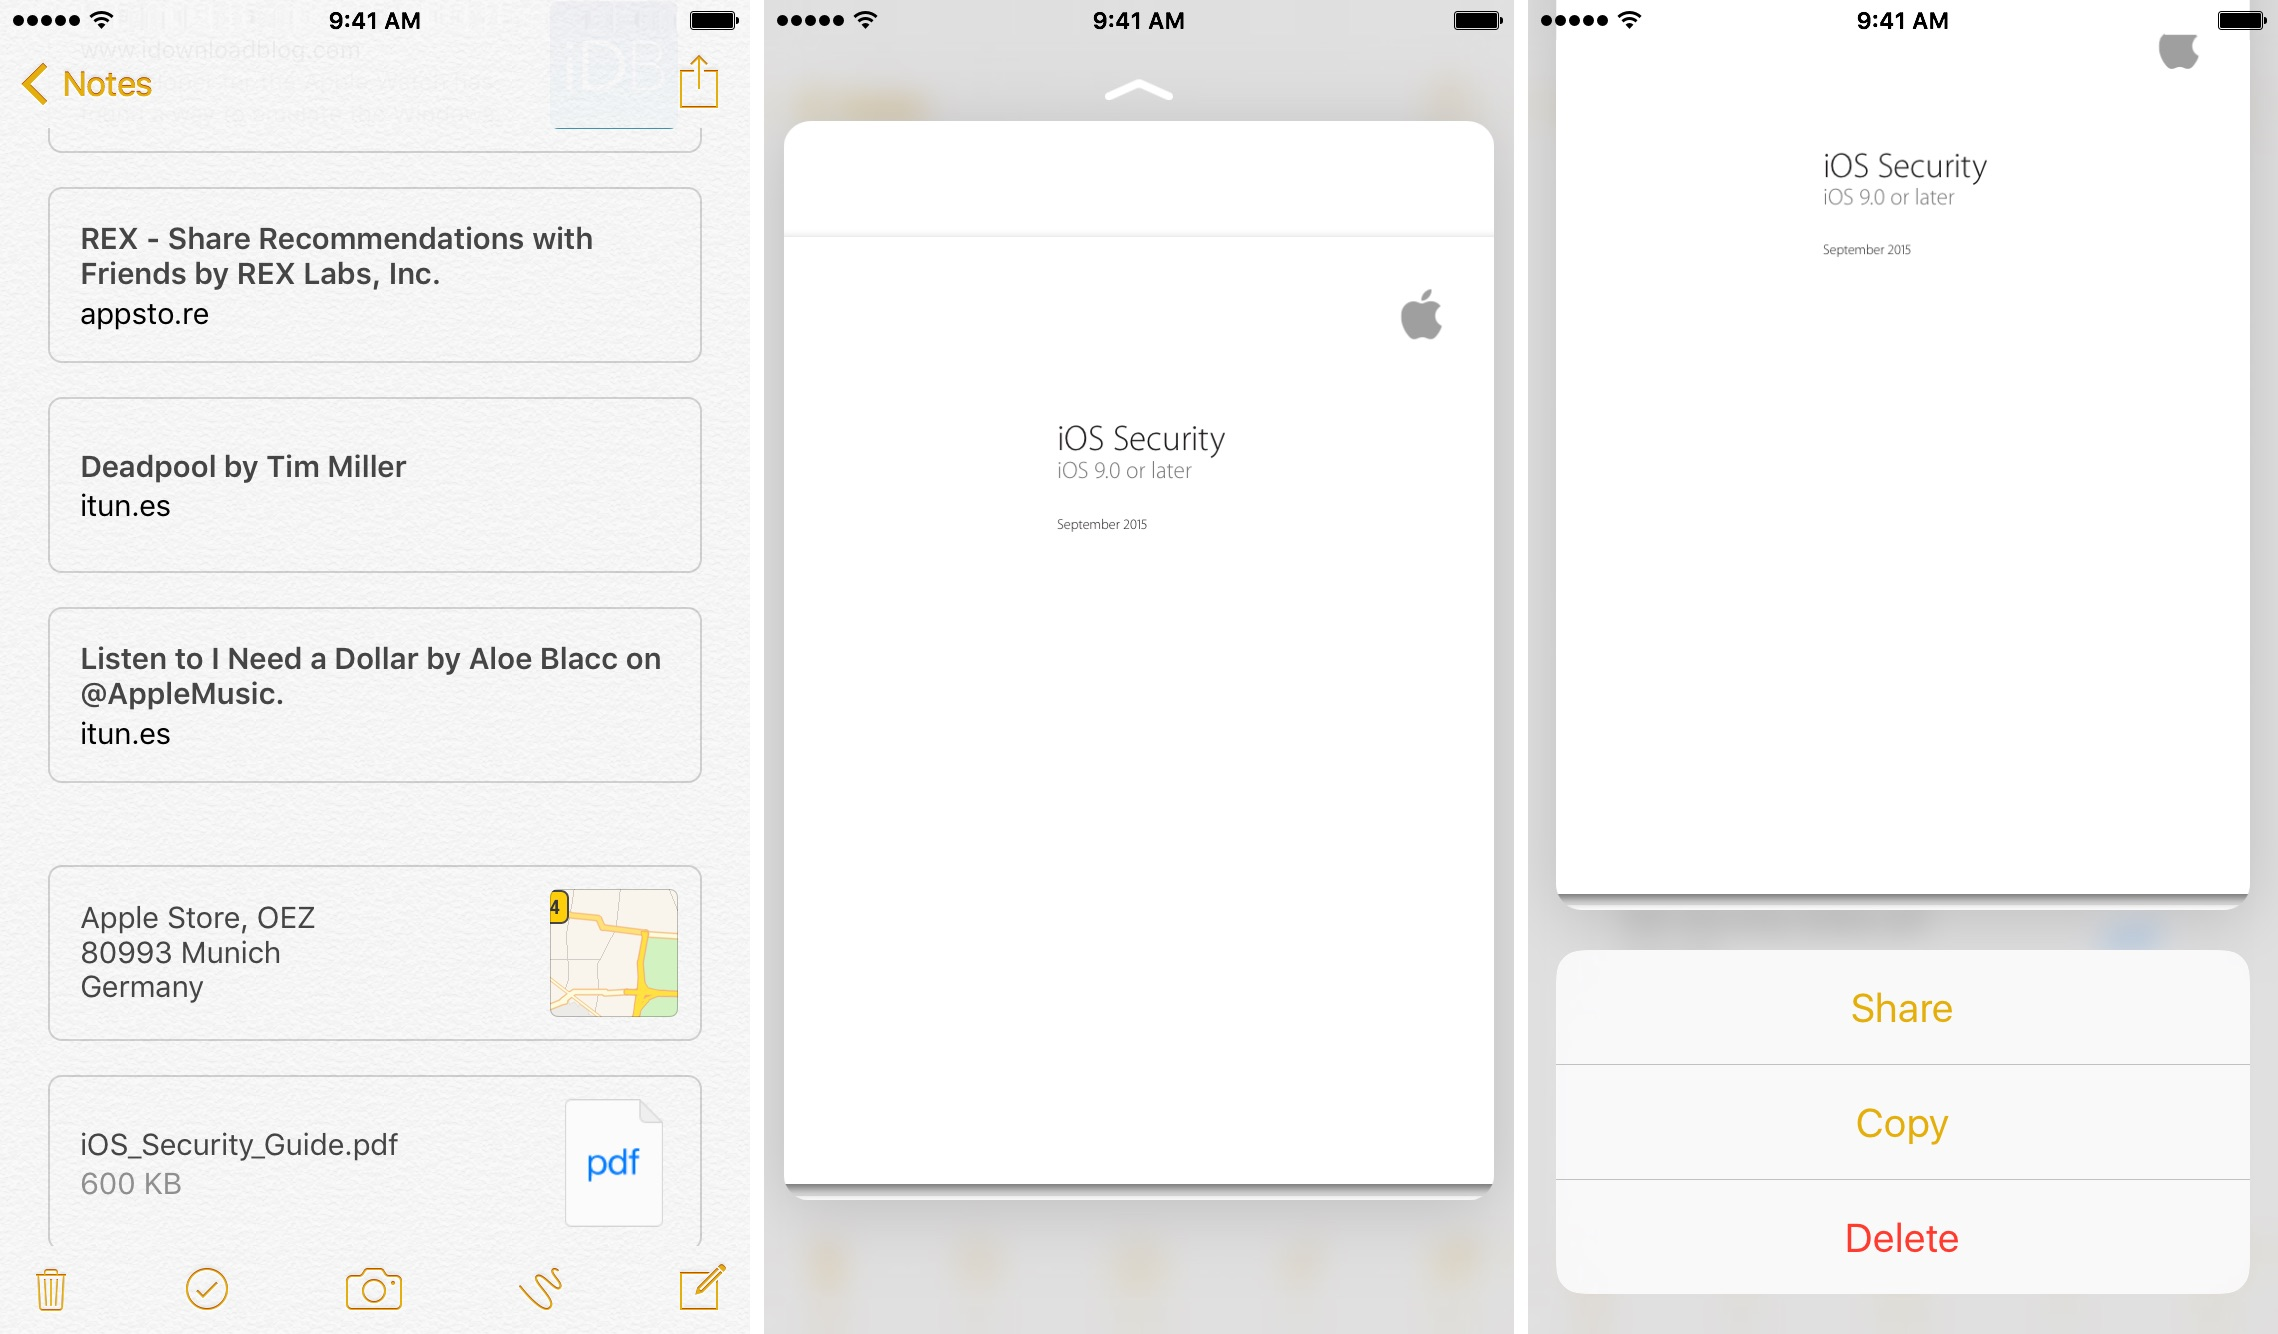 iOS 9 Notes 3D Touch preview attachments iPhone 6s screenshot 007